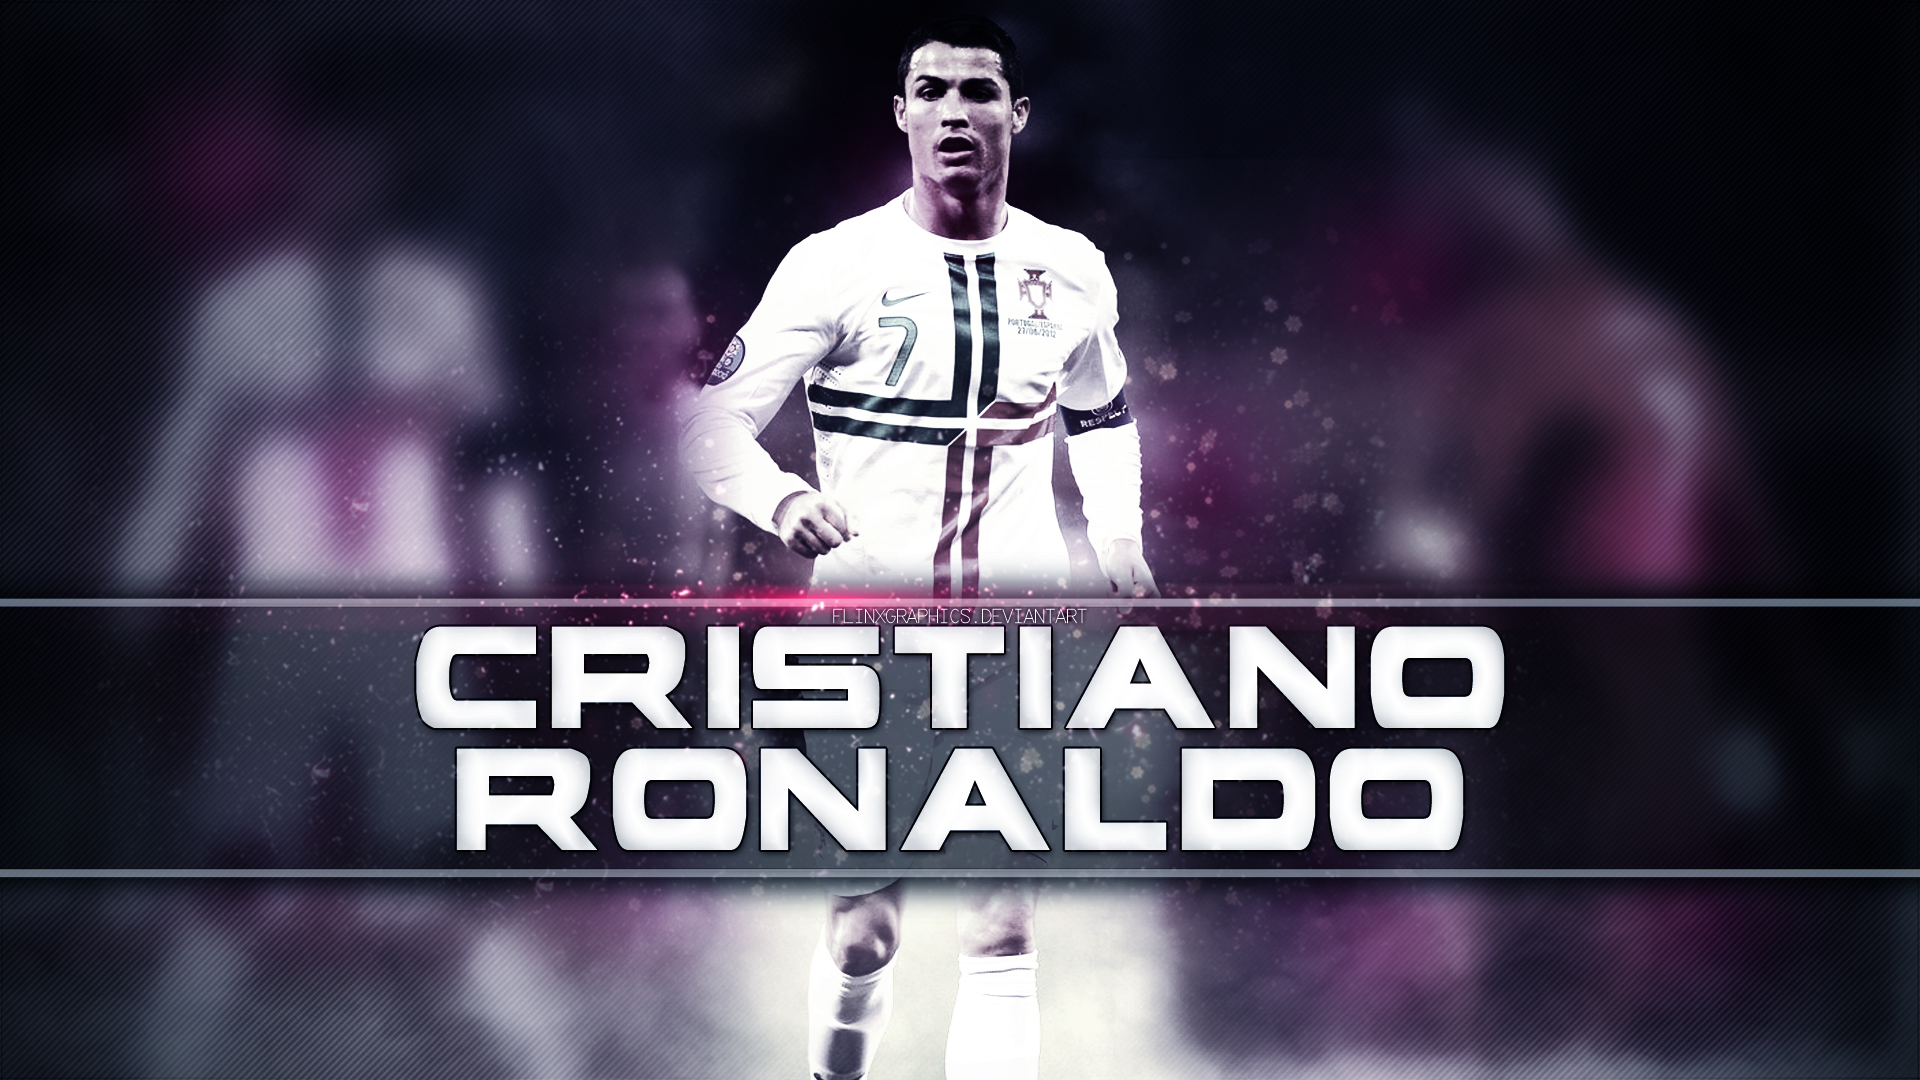 Cristiano ronaldo wallpapers hd a32 hd desktop wallpapers 4k hd cristiano ronaldo wallpapers hd a32 voltagebd Images